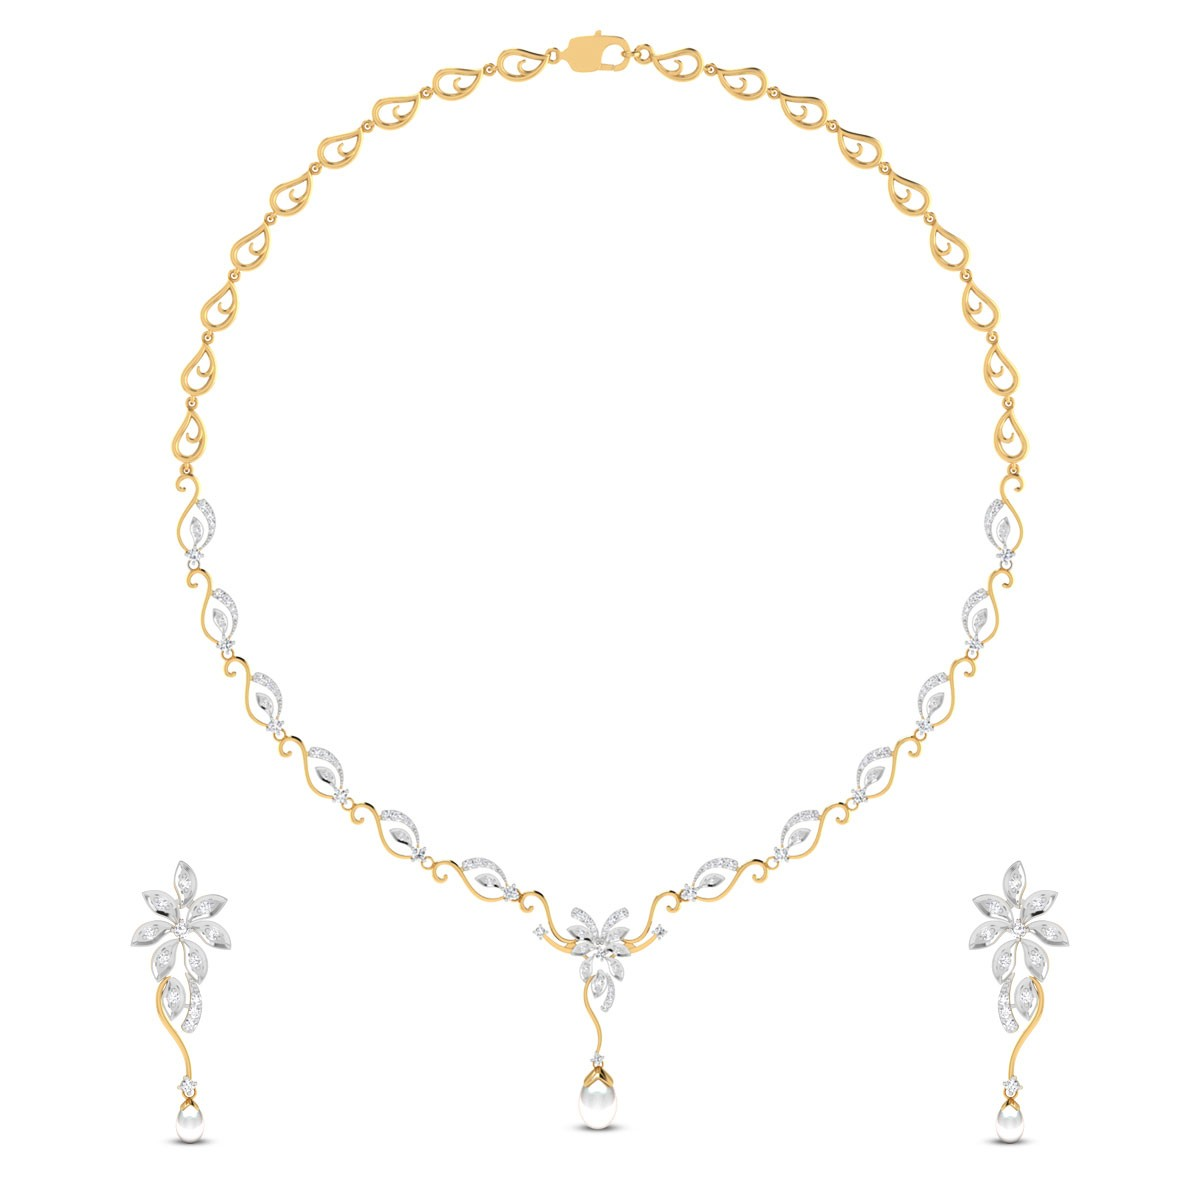 Sheehan Diamond Floral Necklace